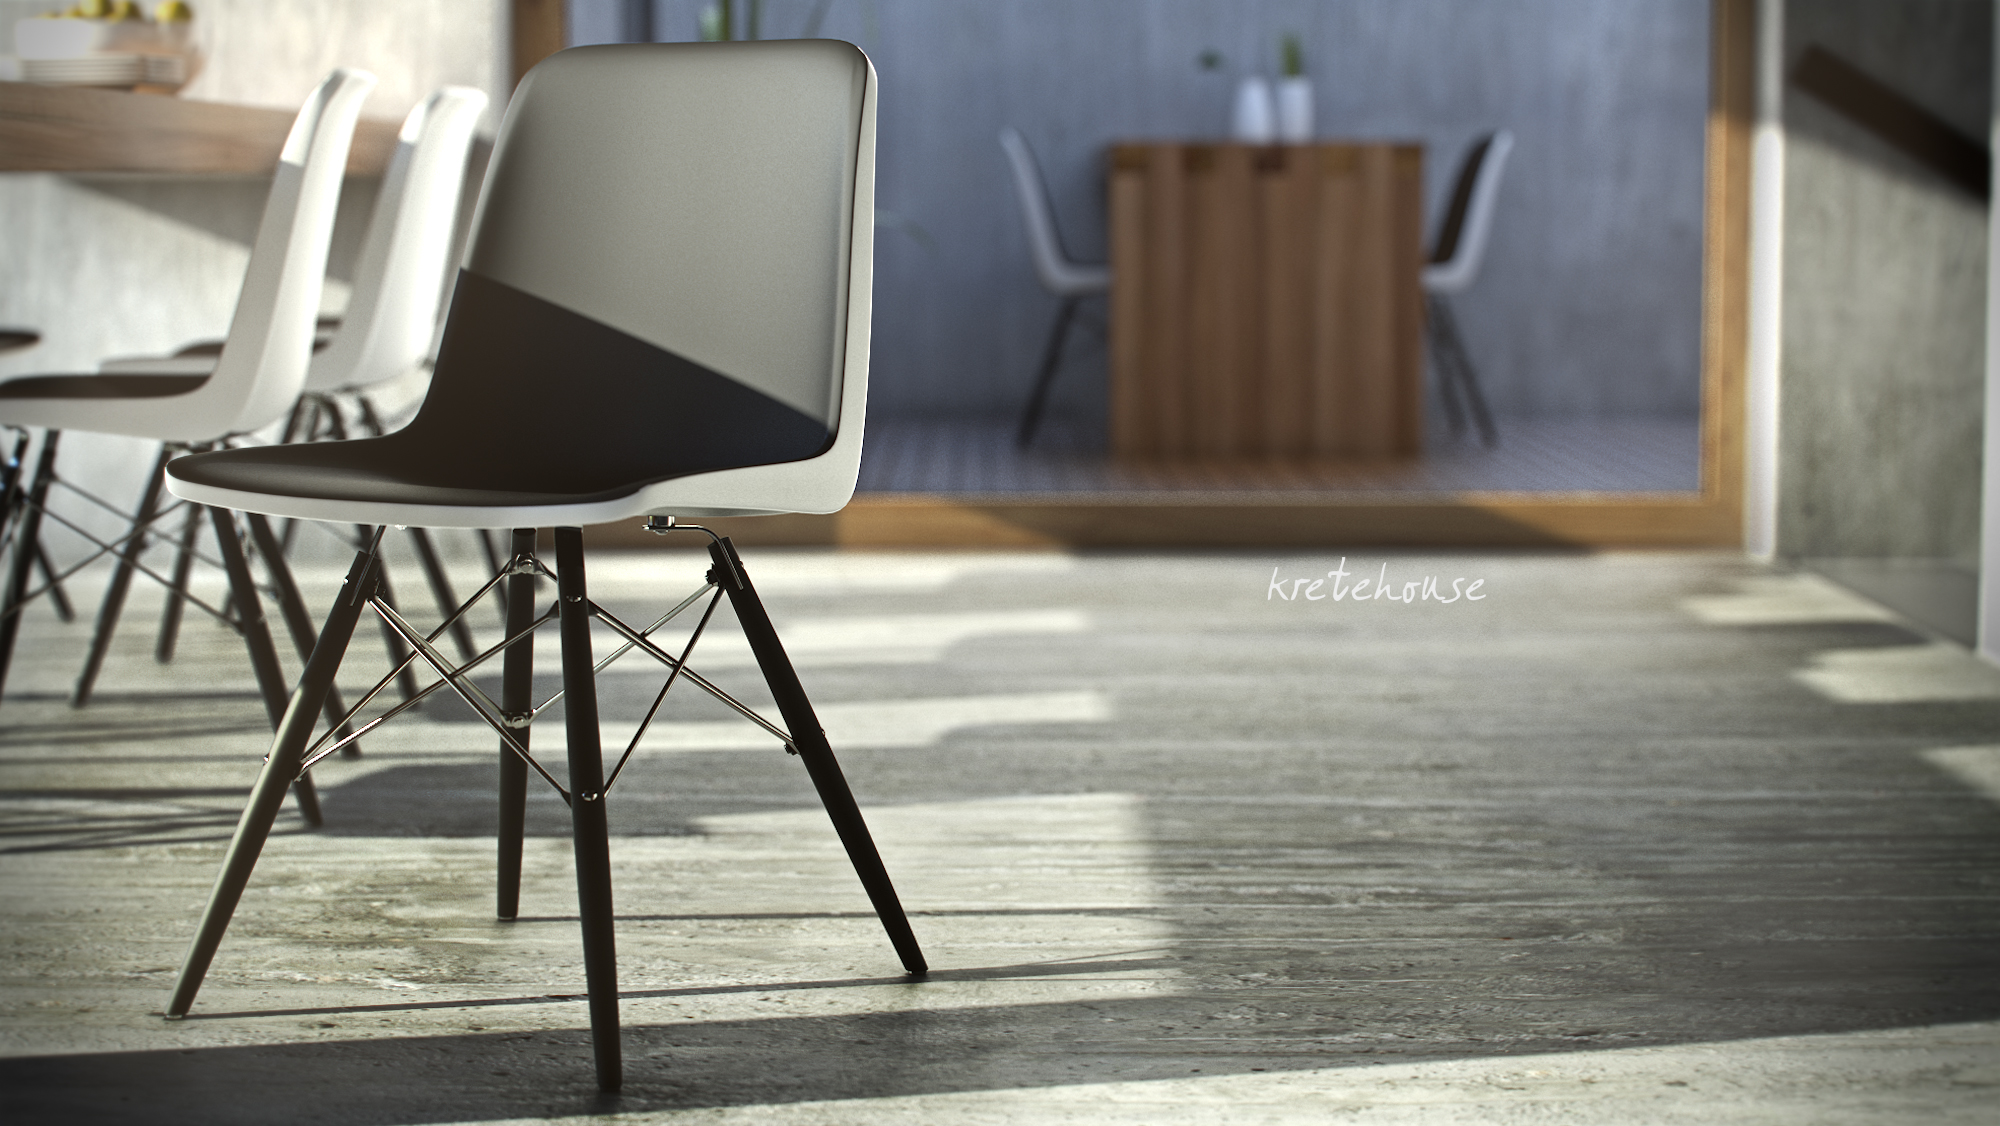 wideopenchair_comp_v001_00000